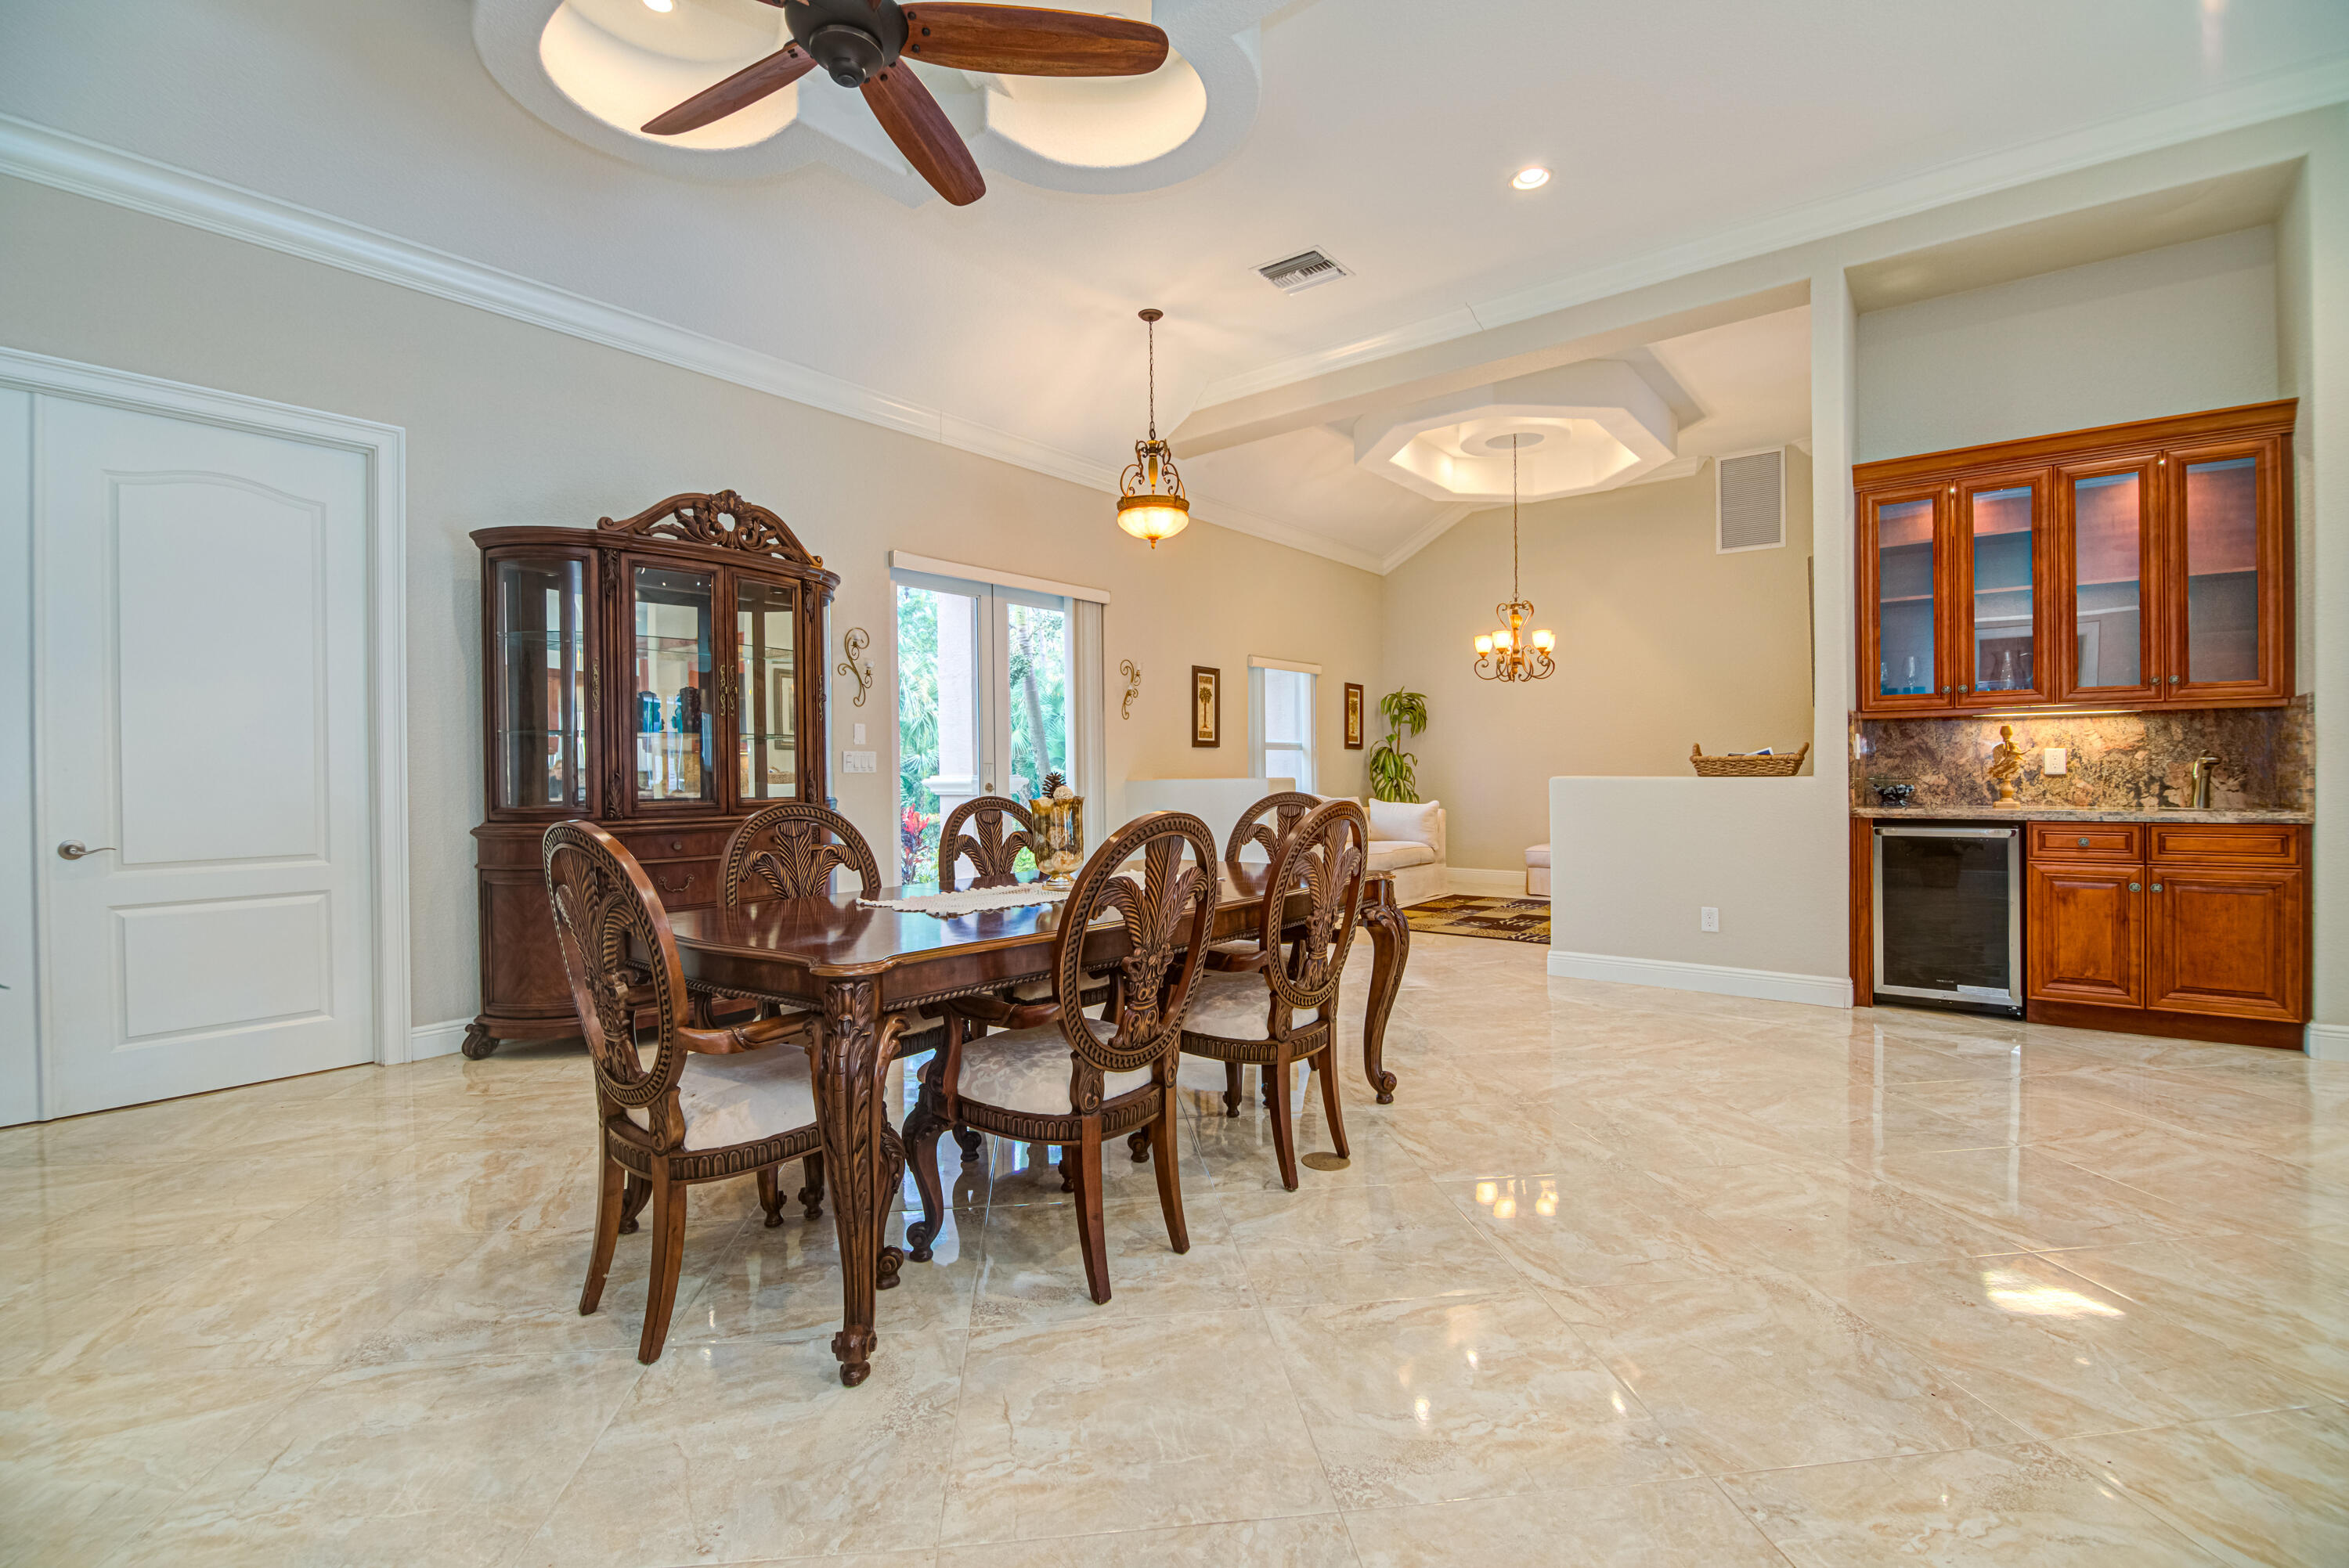 DINING AND WET BAR